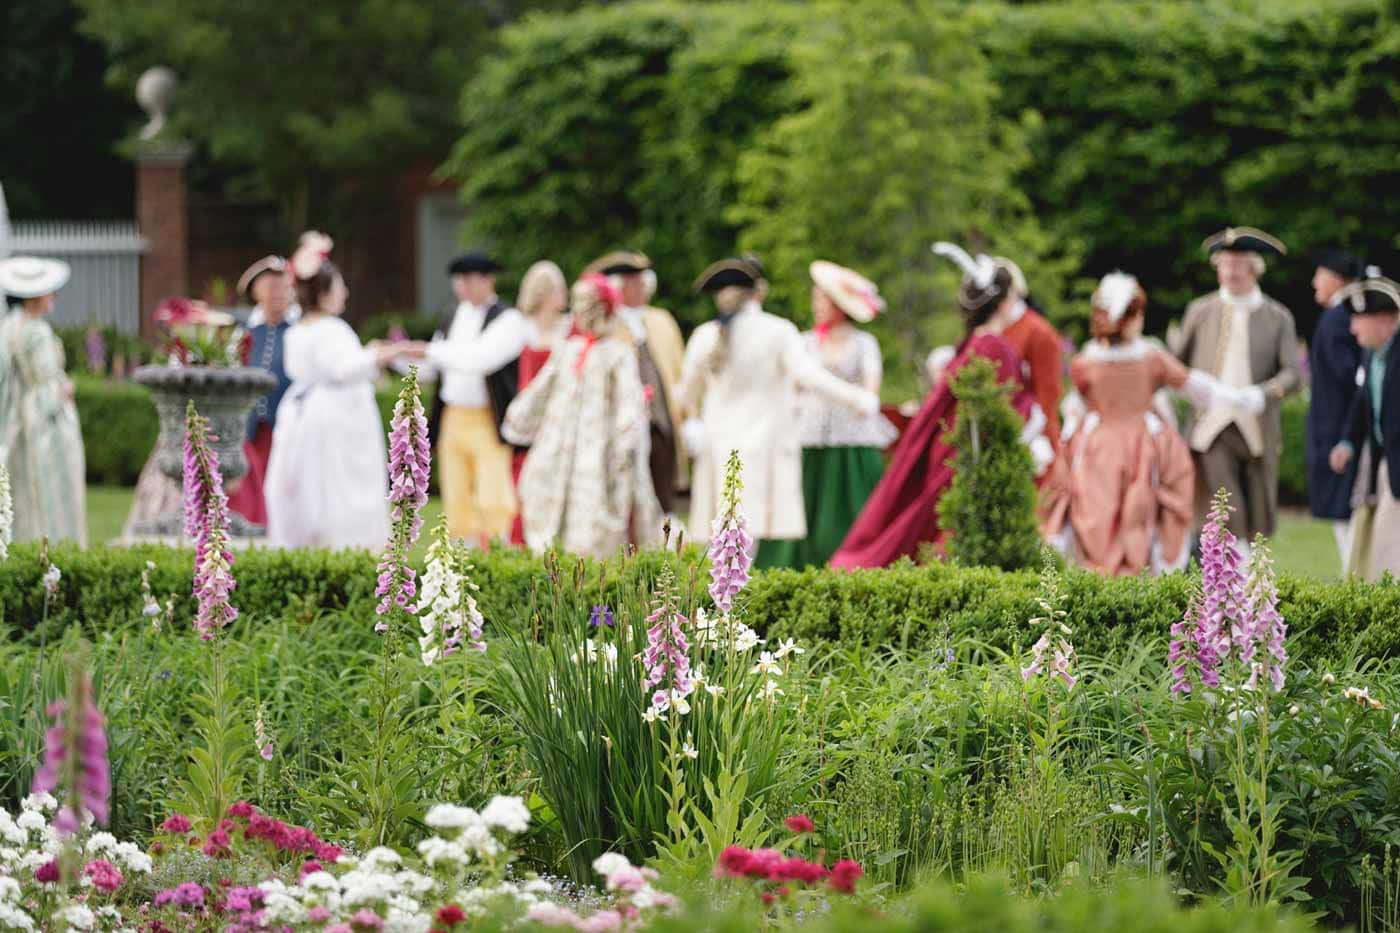 Mr. Jefferson's Palace Garden Party